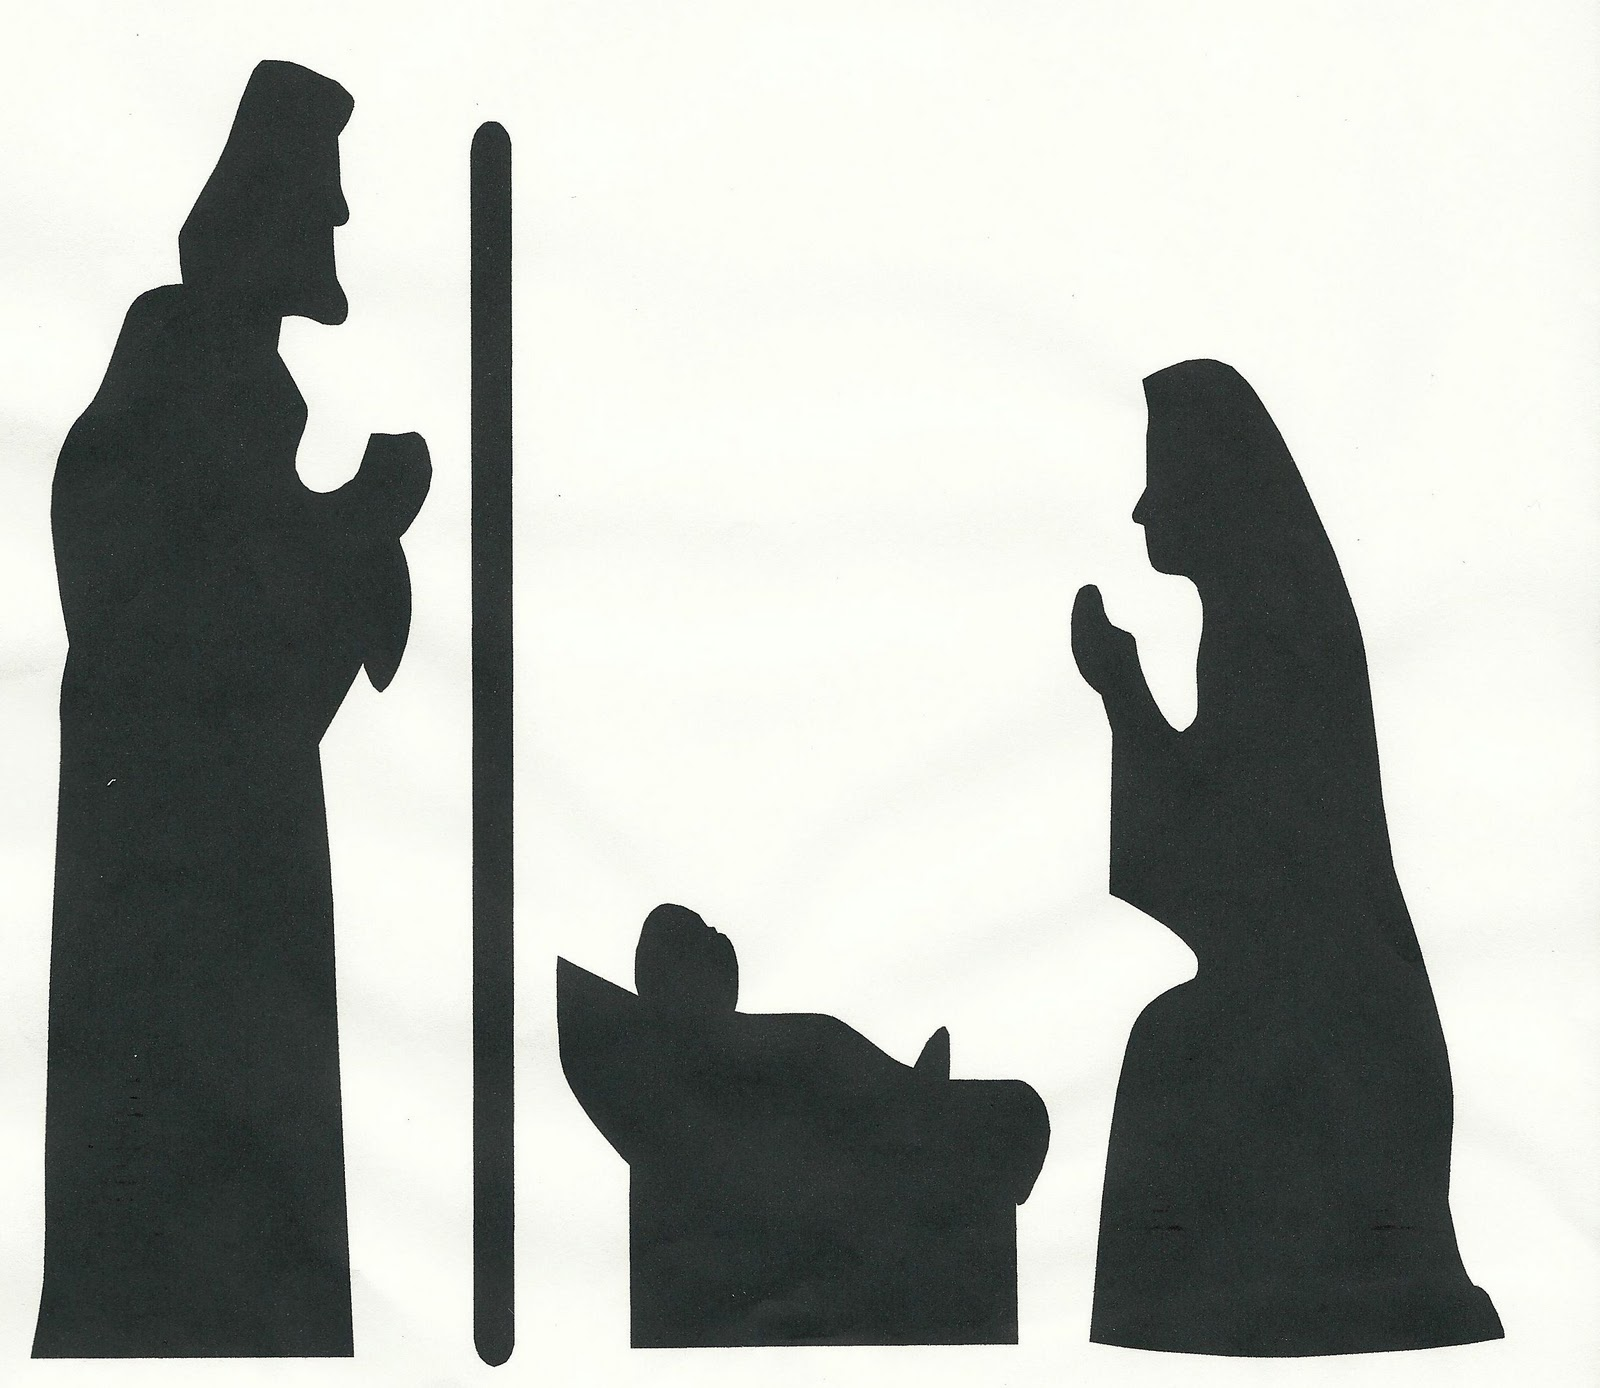 Nativity Silhouette Clip Art November 9th-r.s. activity